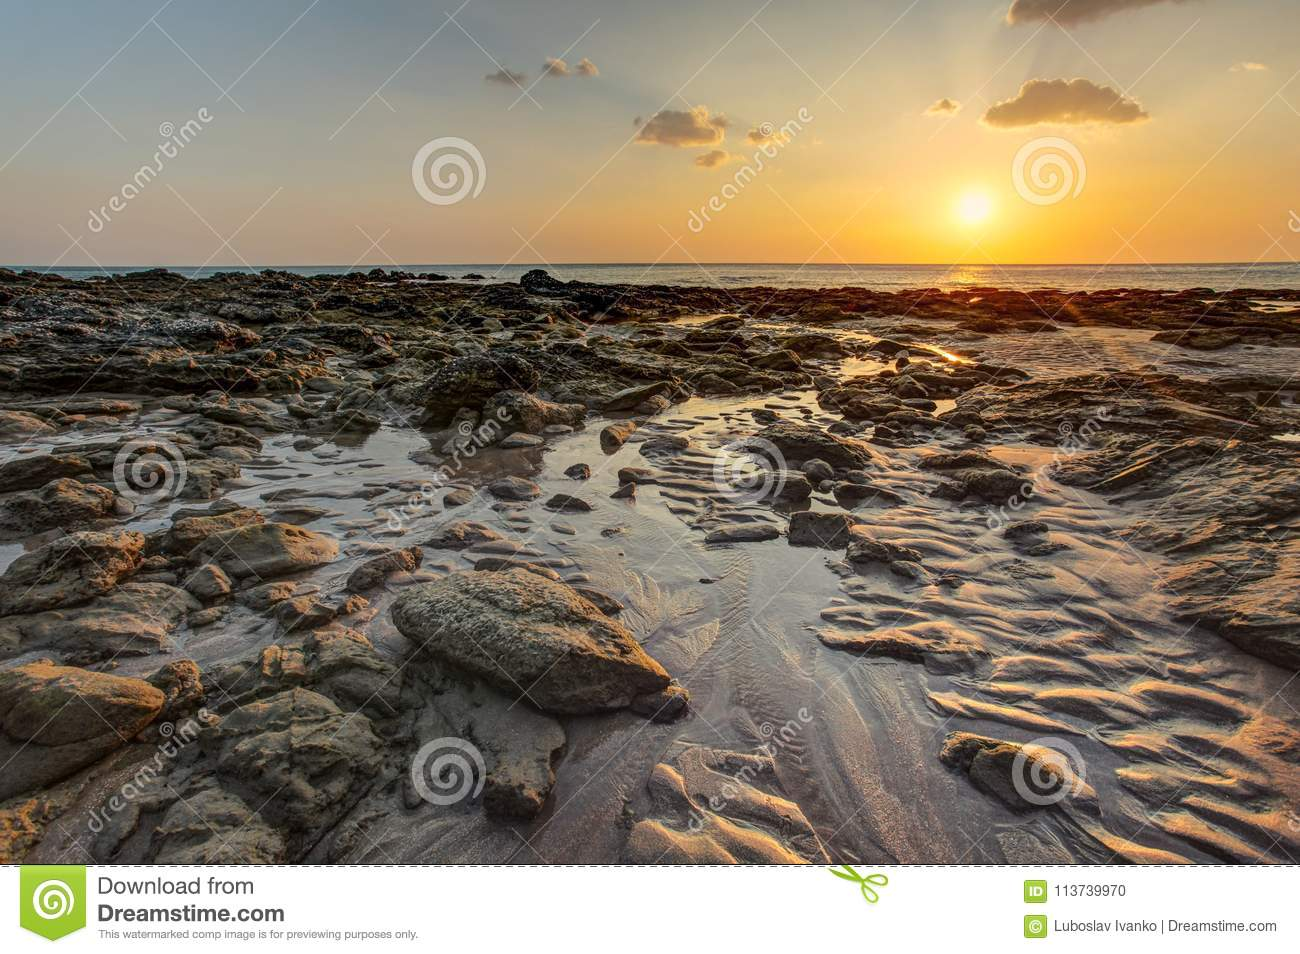 Beach in golden sunset light during low tide showing sand format